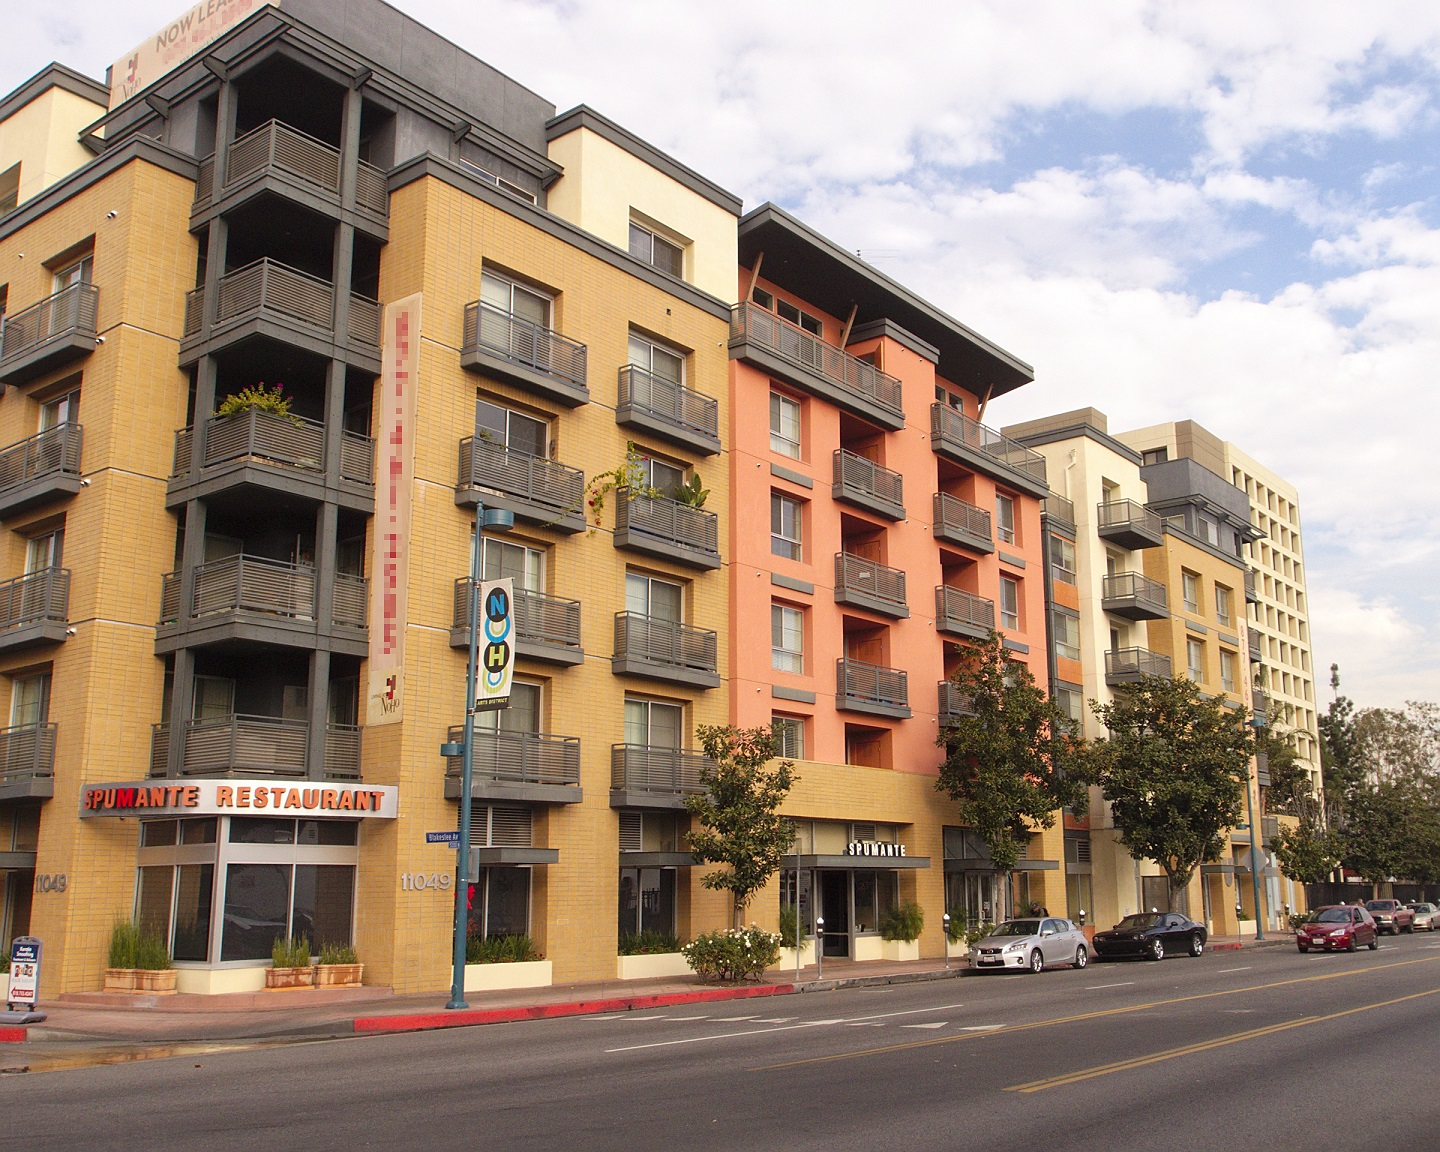 Los angeles neighborhood guide movoto for Home for sale los angeles ca